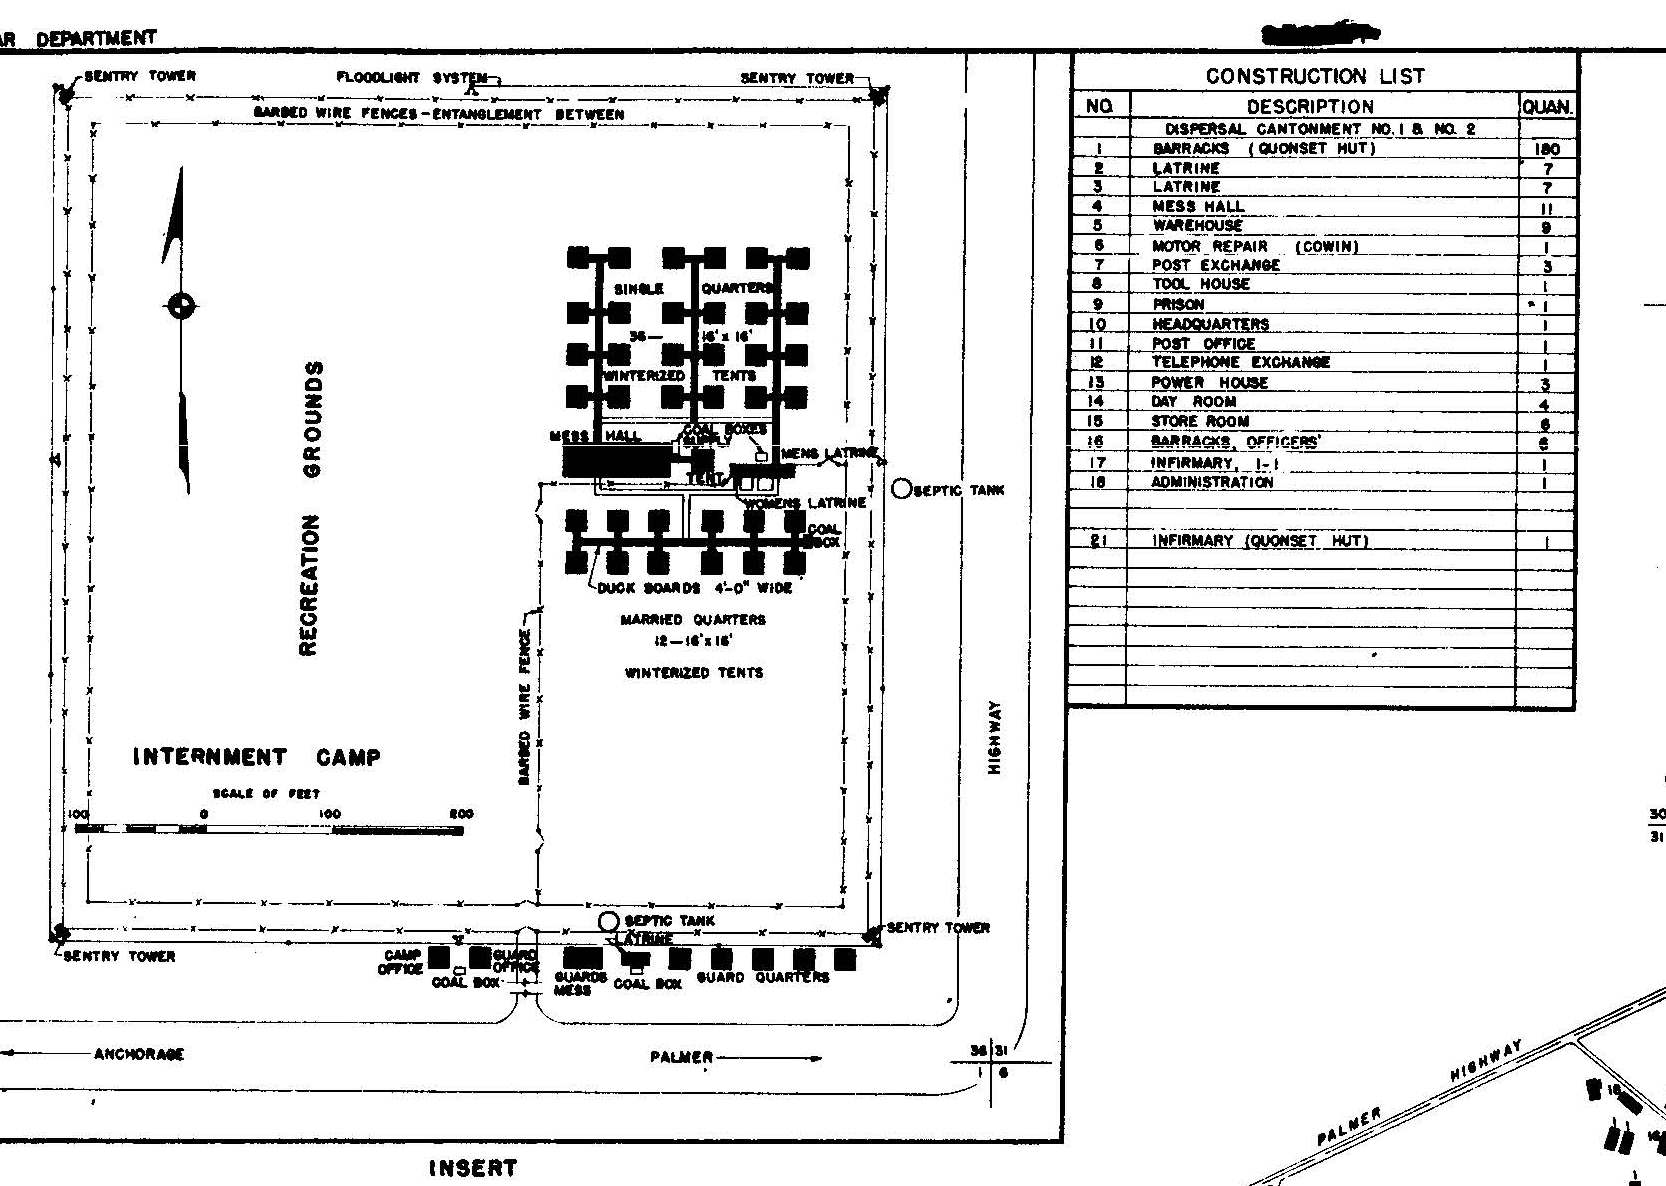 A schematic of the internment camp layout (Courtesy of Dr. Morgan Blanchard, Northern Land Use Research Alaska)